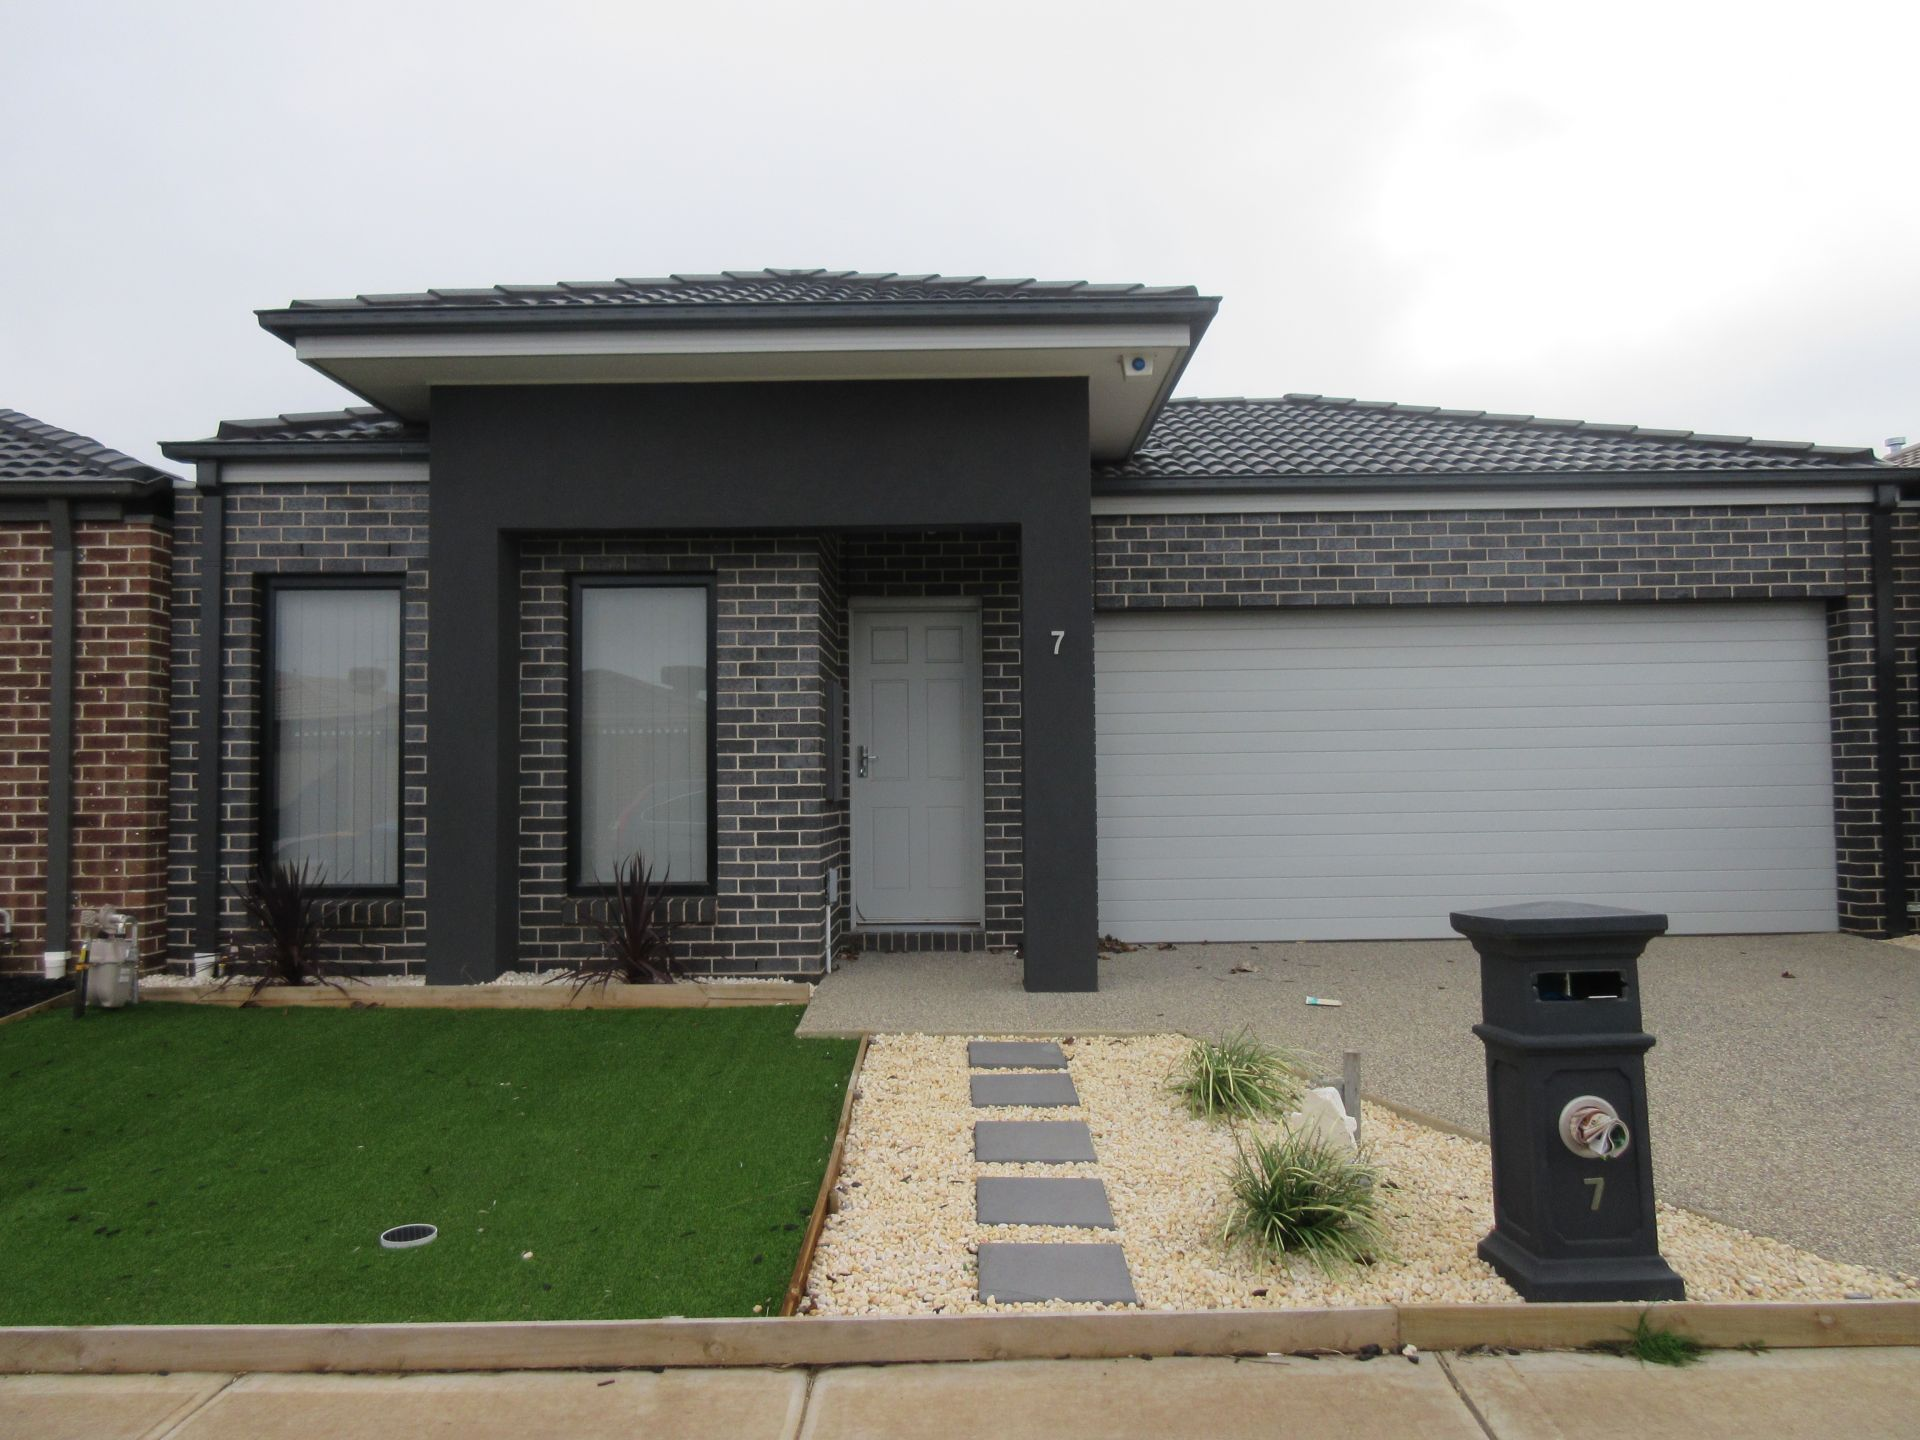 Real Estate For Lease 7 Katoora Street Truganina Vic